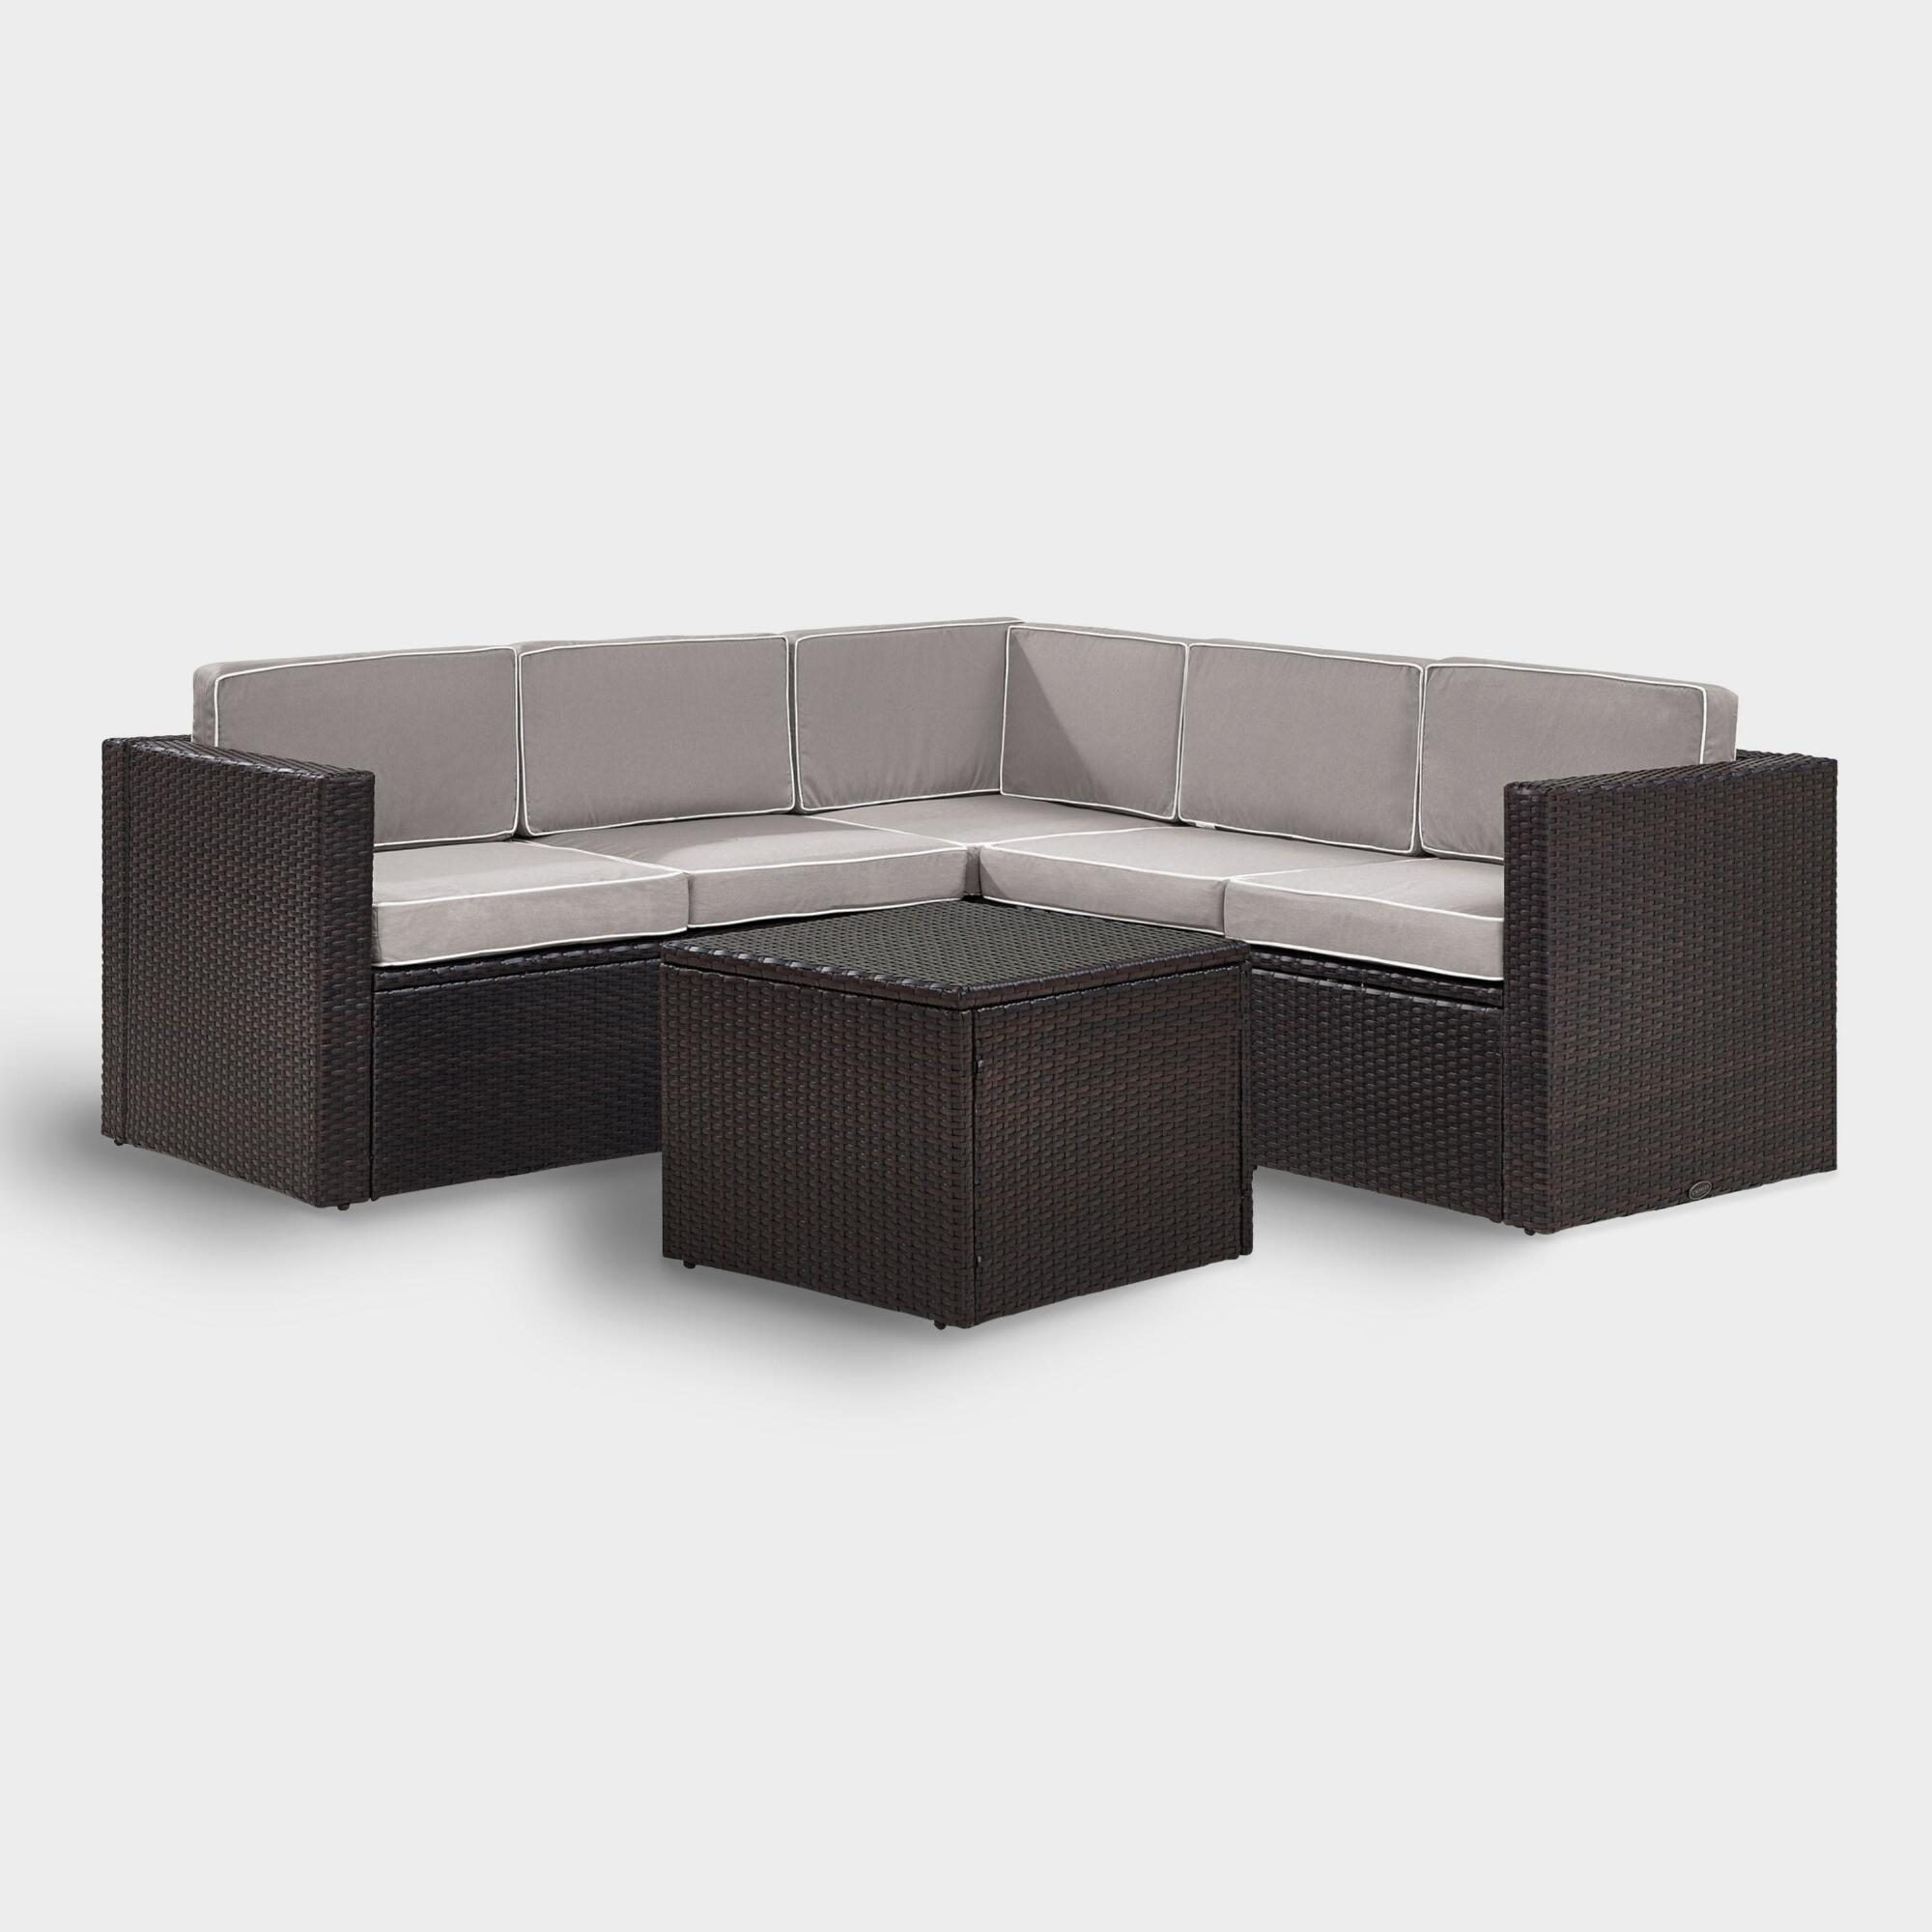 Espresso All Weather 6 Pc Outdoor Patio Sectional & Gray Cushions by World Market